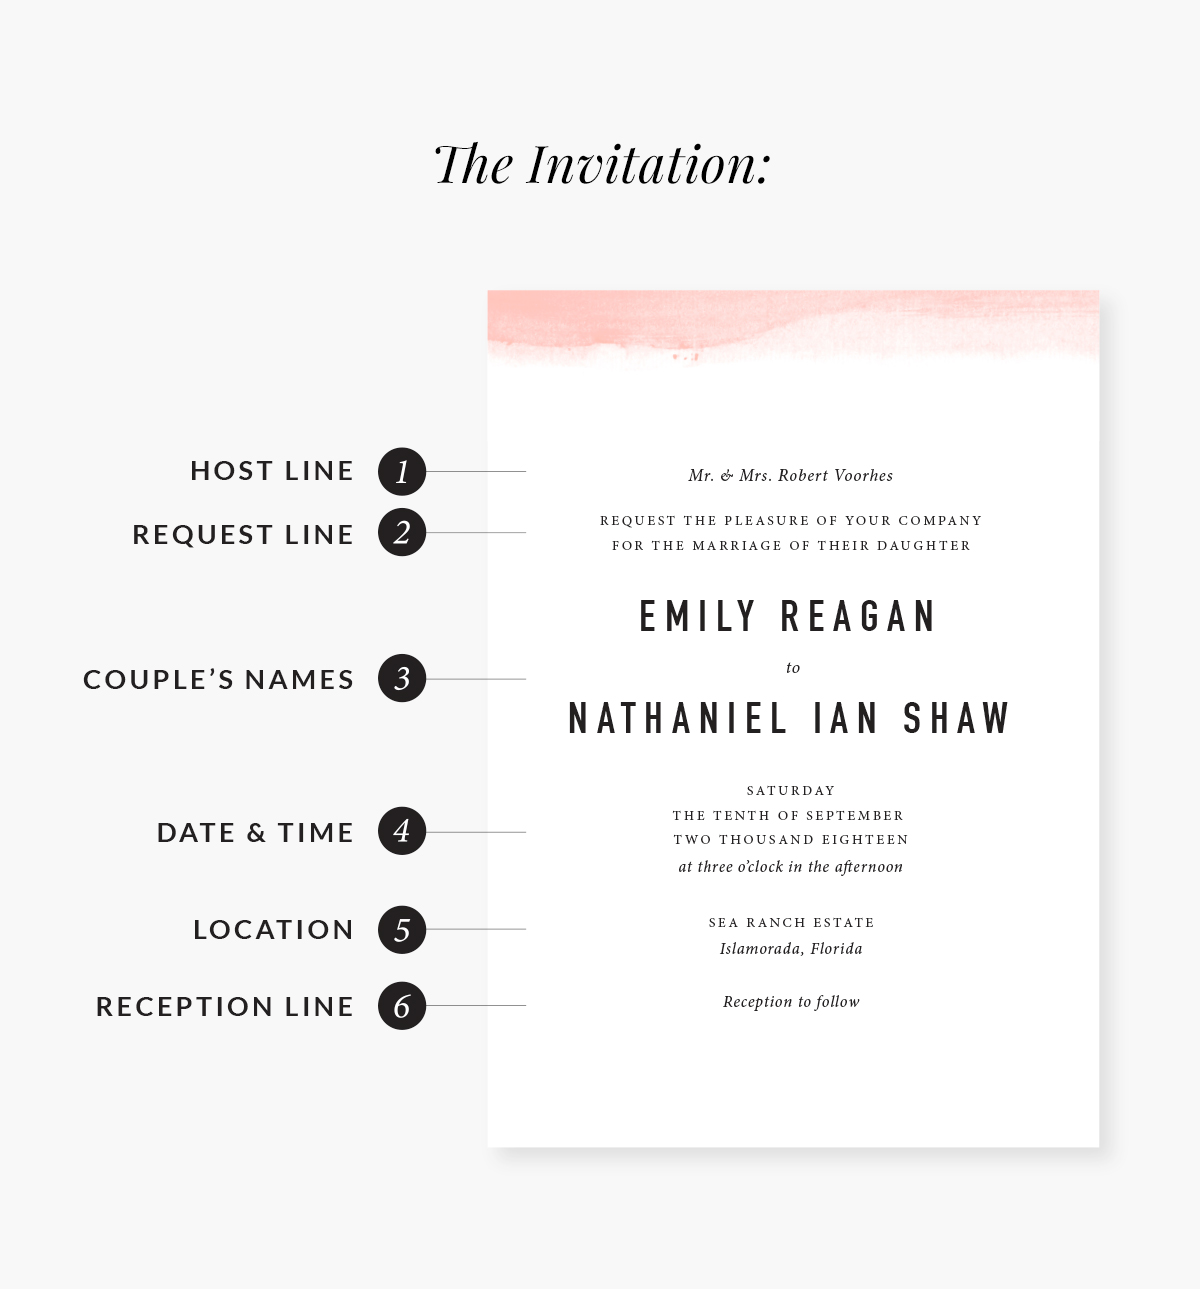 Invitation Wording For Wedding Couple Hosting: Wedding Invitation Wording